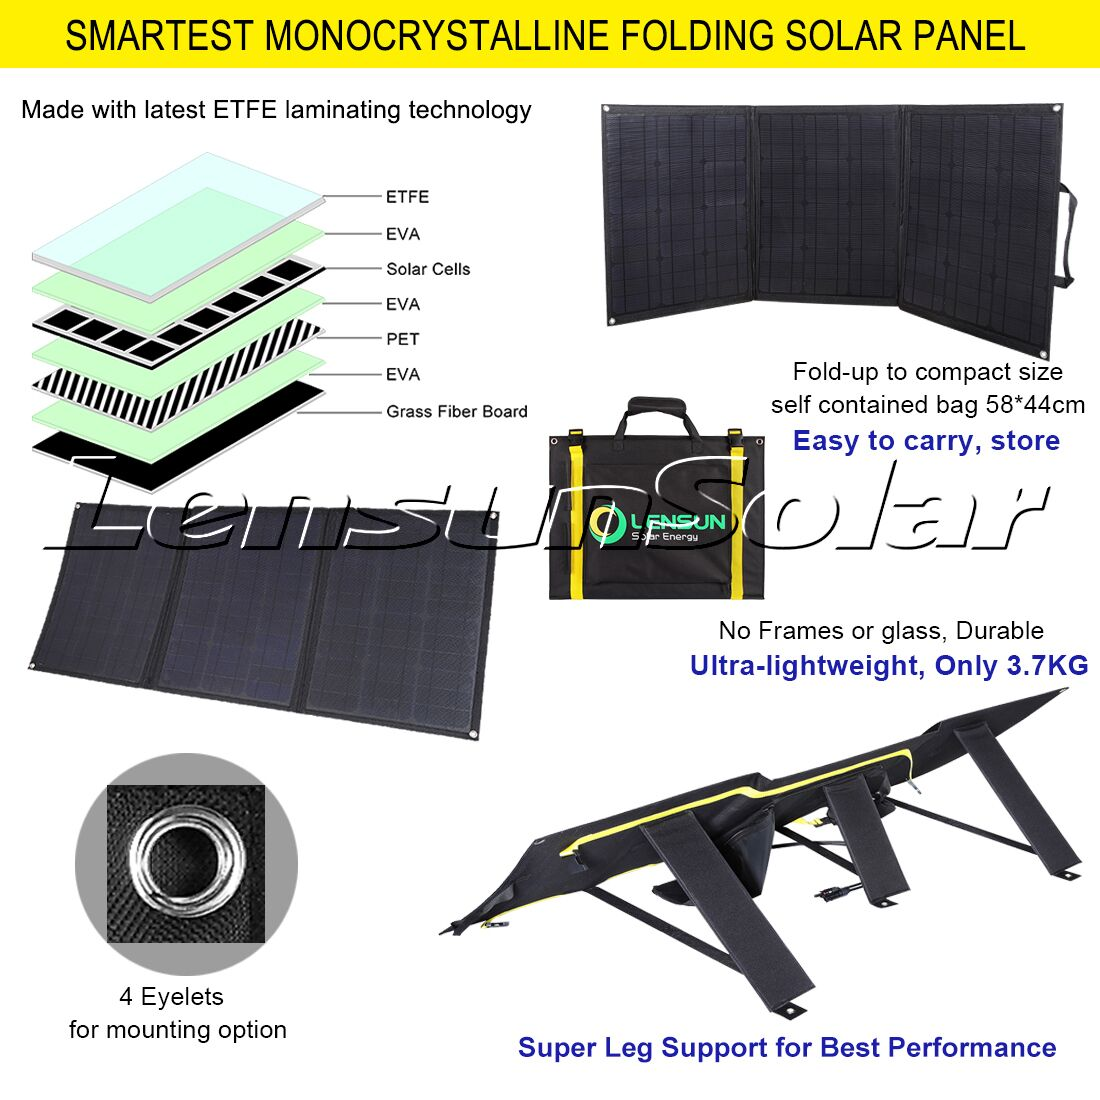 lensun 100w 12v etfe flexible folding solar panel kit portable rh lensunsolar com 4wd motorhomes hire scotland 4wd motorhomes for sale australia